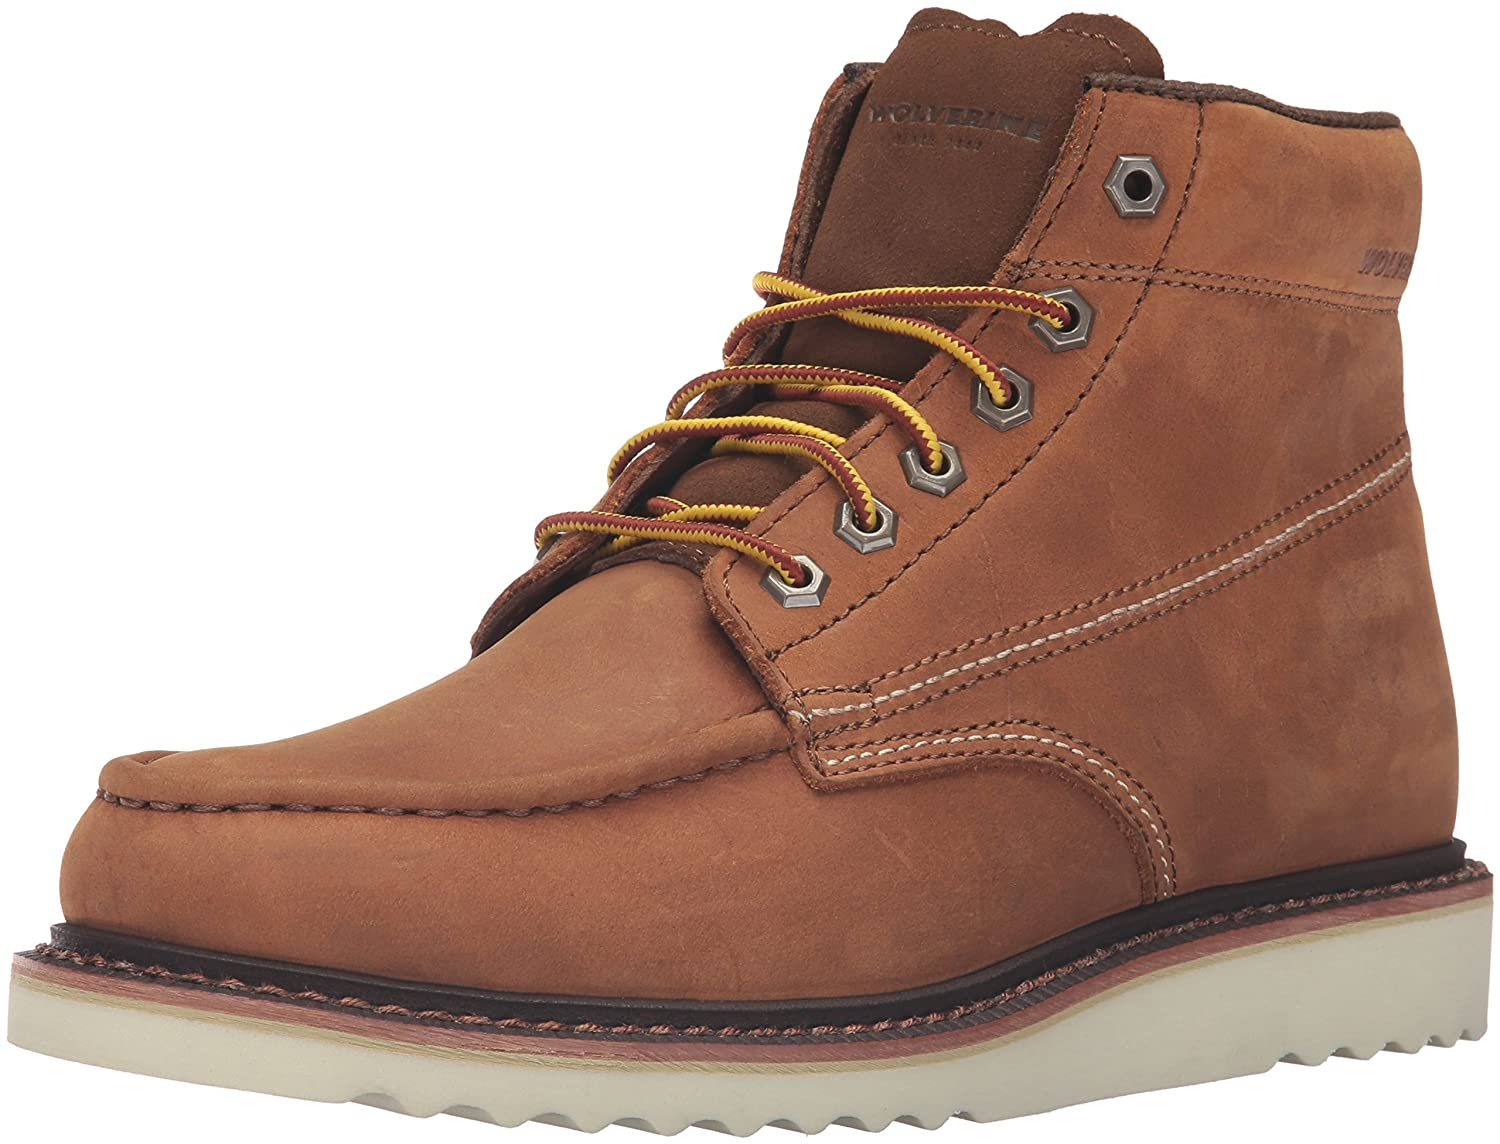 1883 by Wolverine Men's Ranger Winter Boot